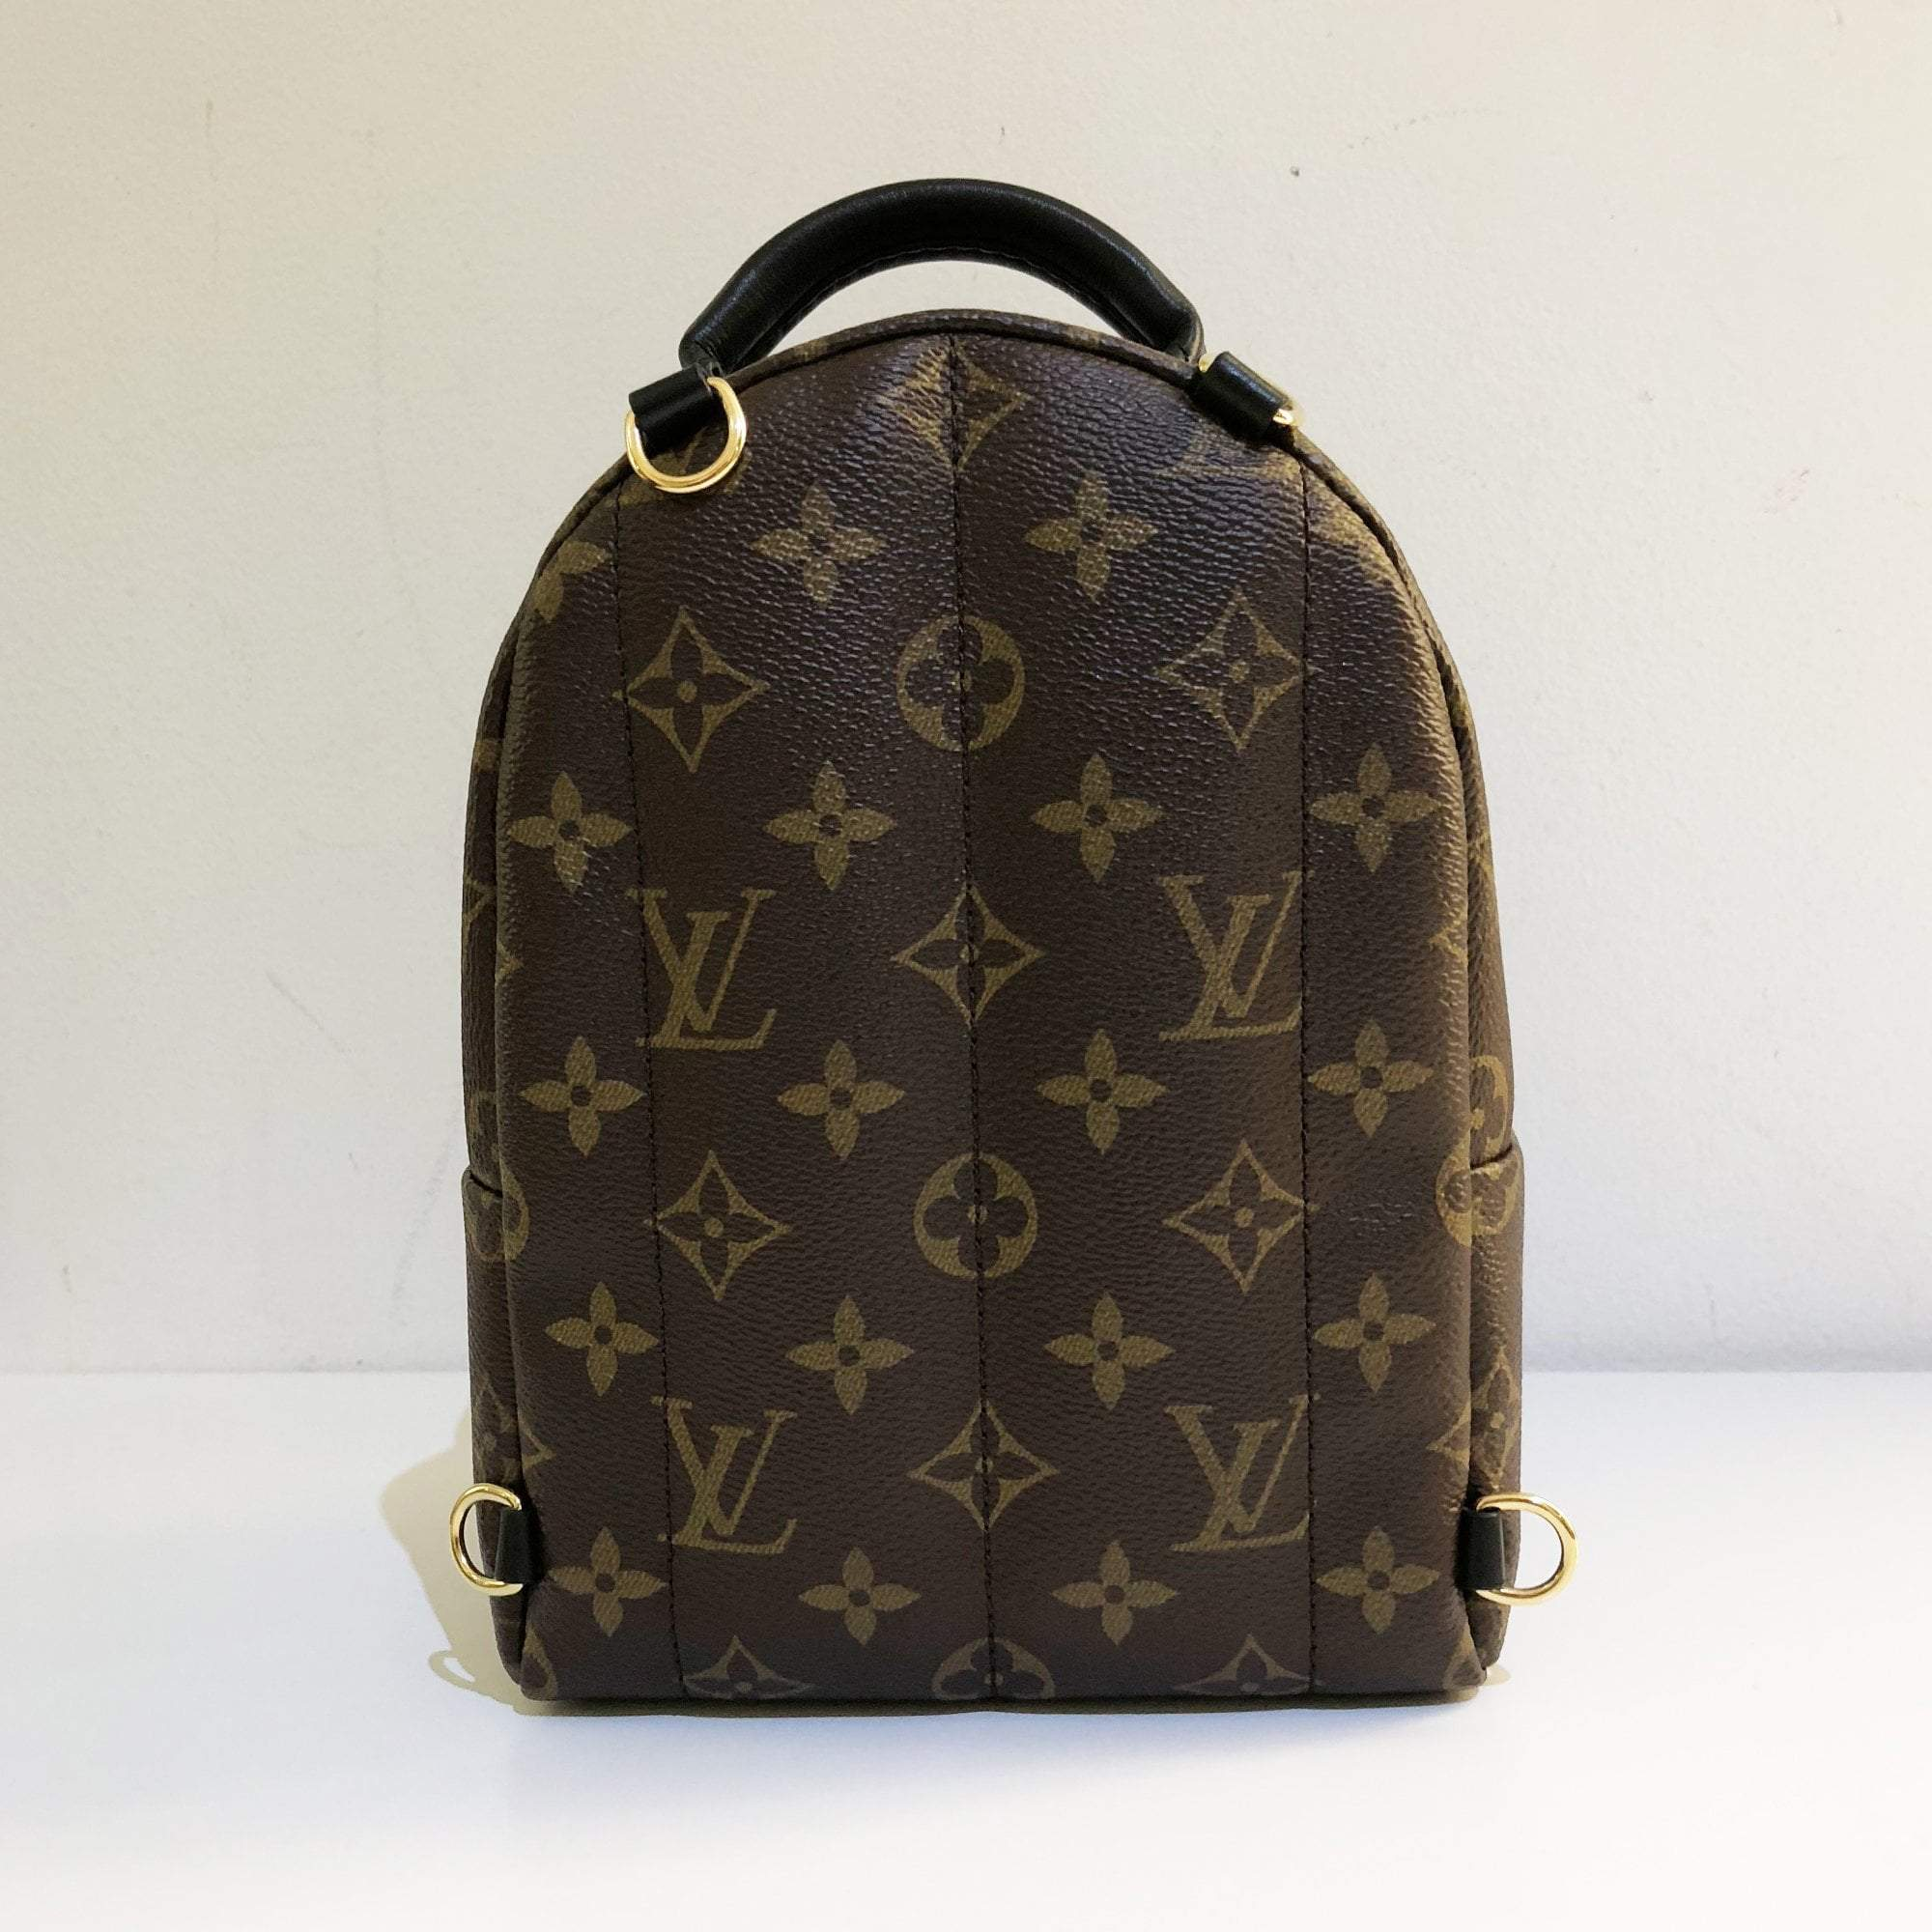 1d7d02754310 Louis Vuitton Palm Springs Backpack Mini – Garderobe